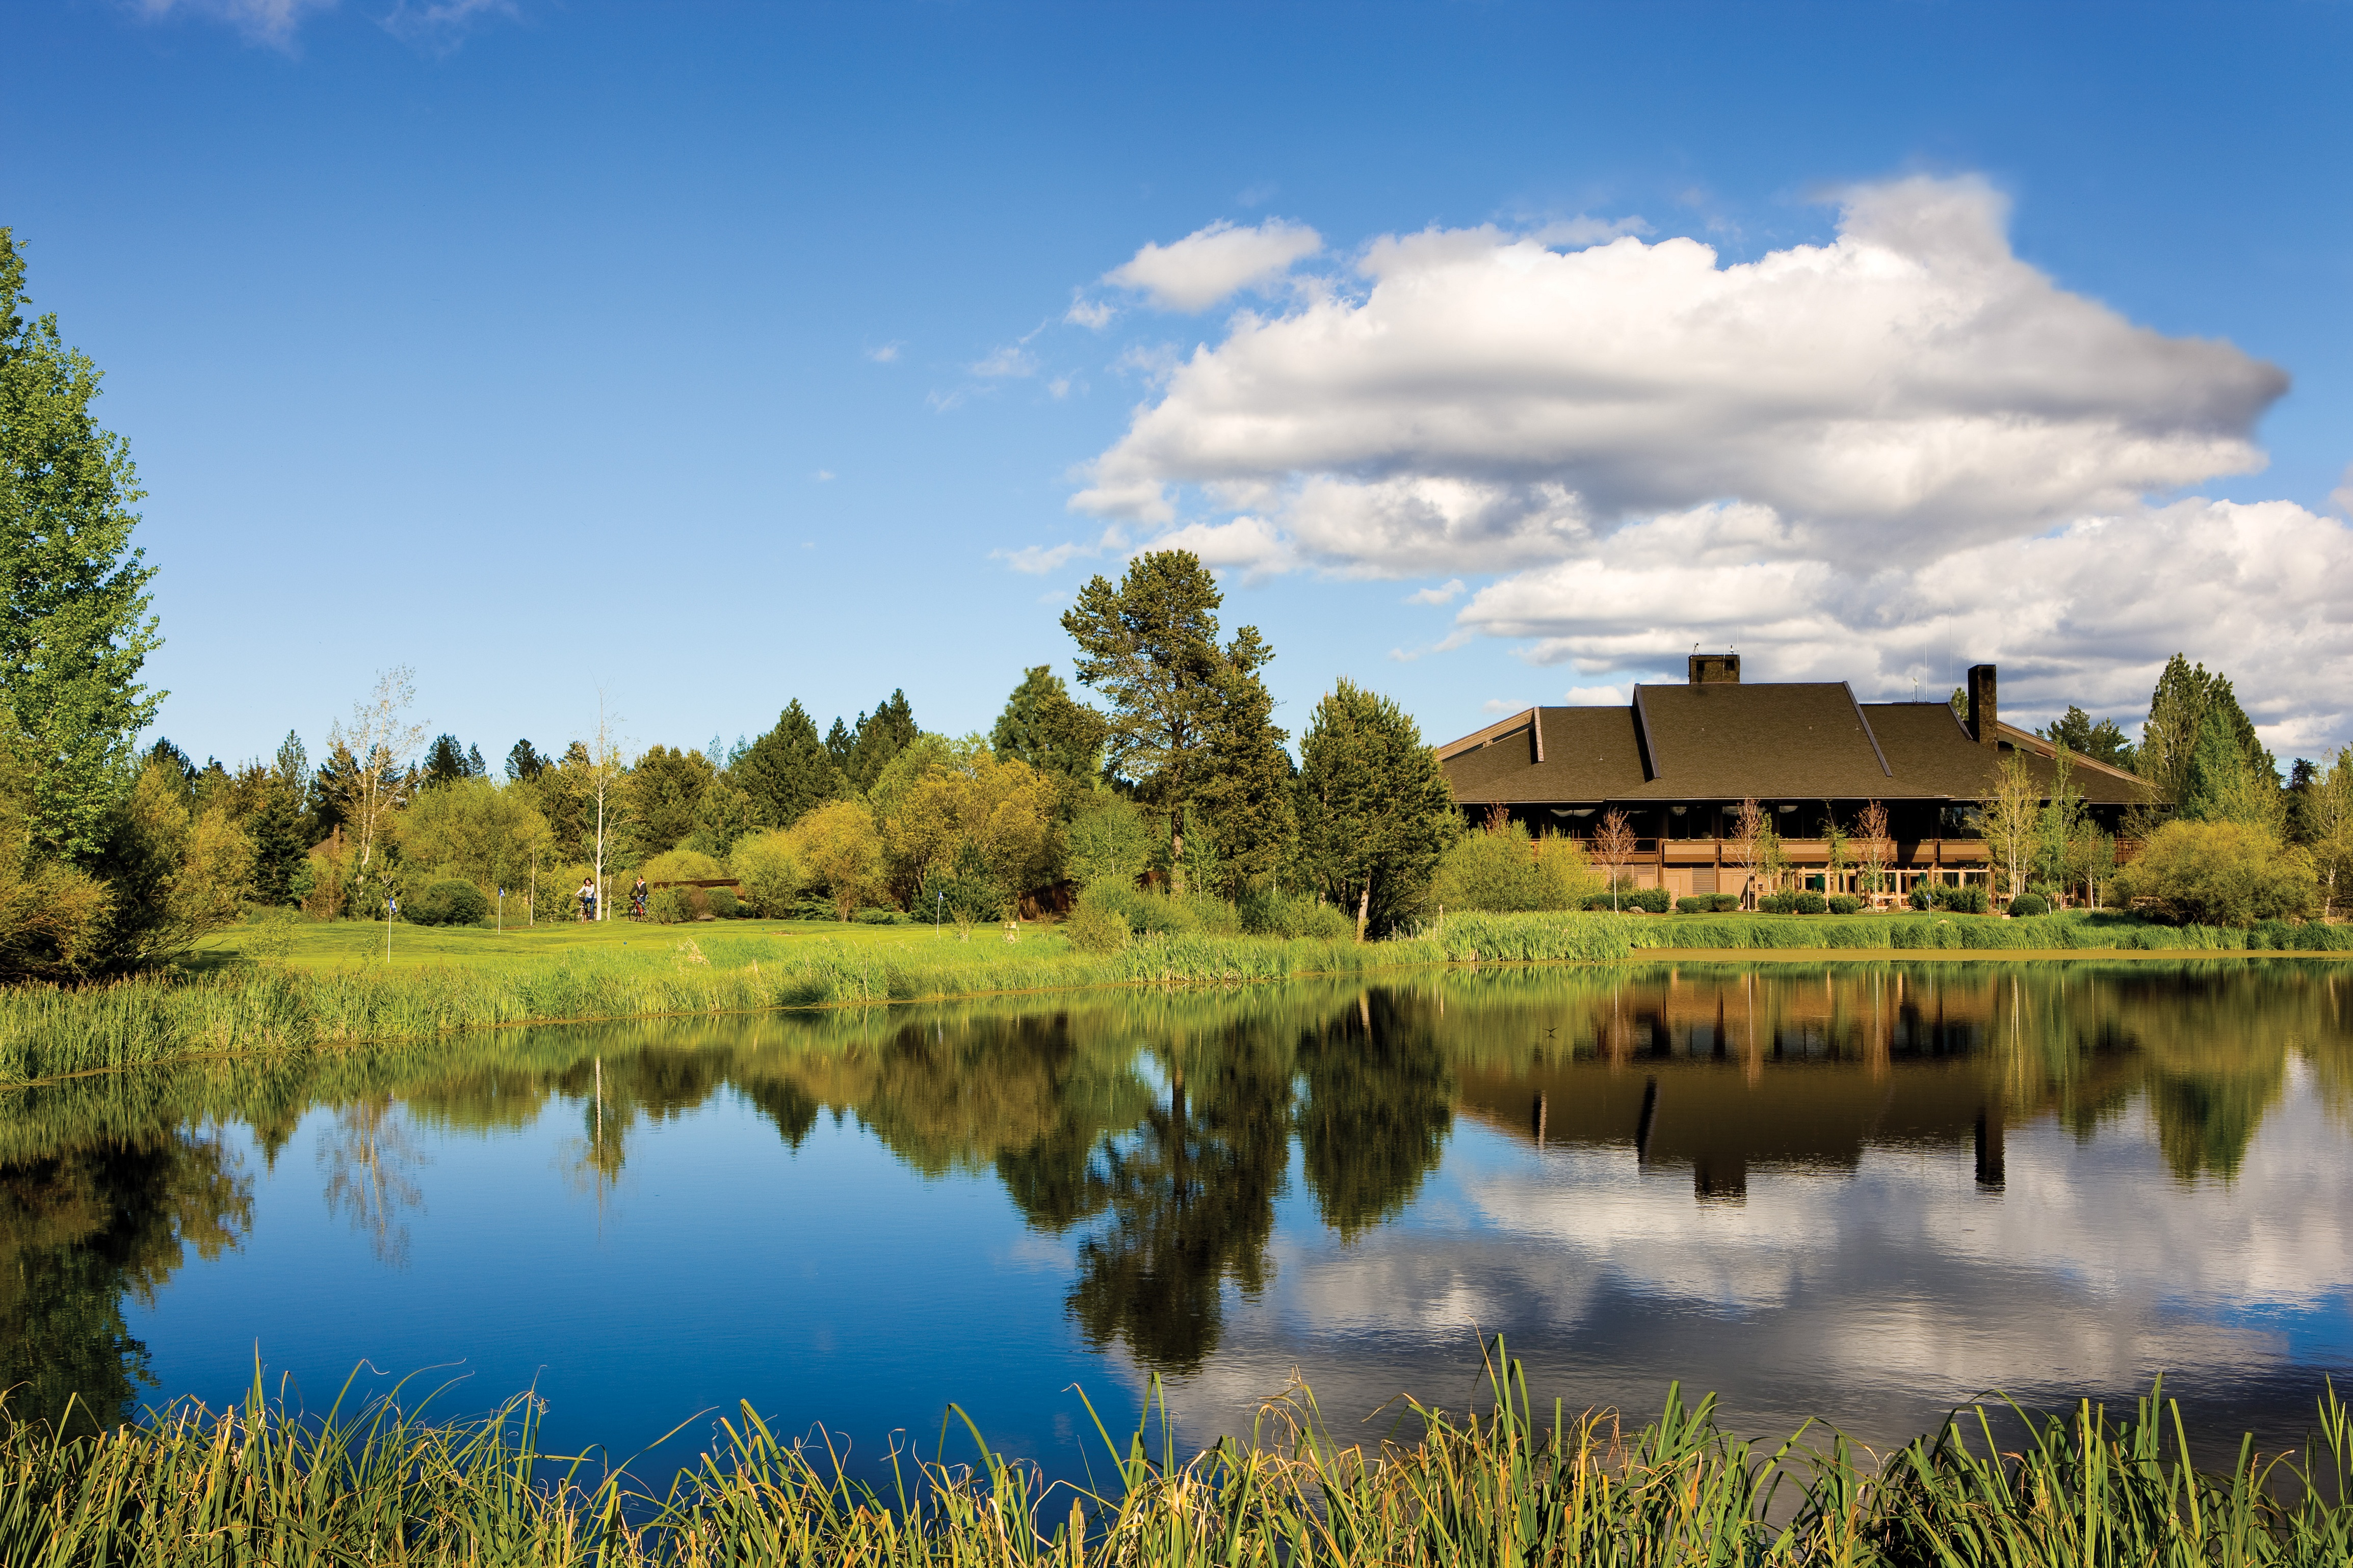 sun river City guide to sunriver oregon to local resources including accommodations, visistor information, food and beverage, dining, attractions, activities.